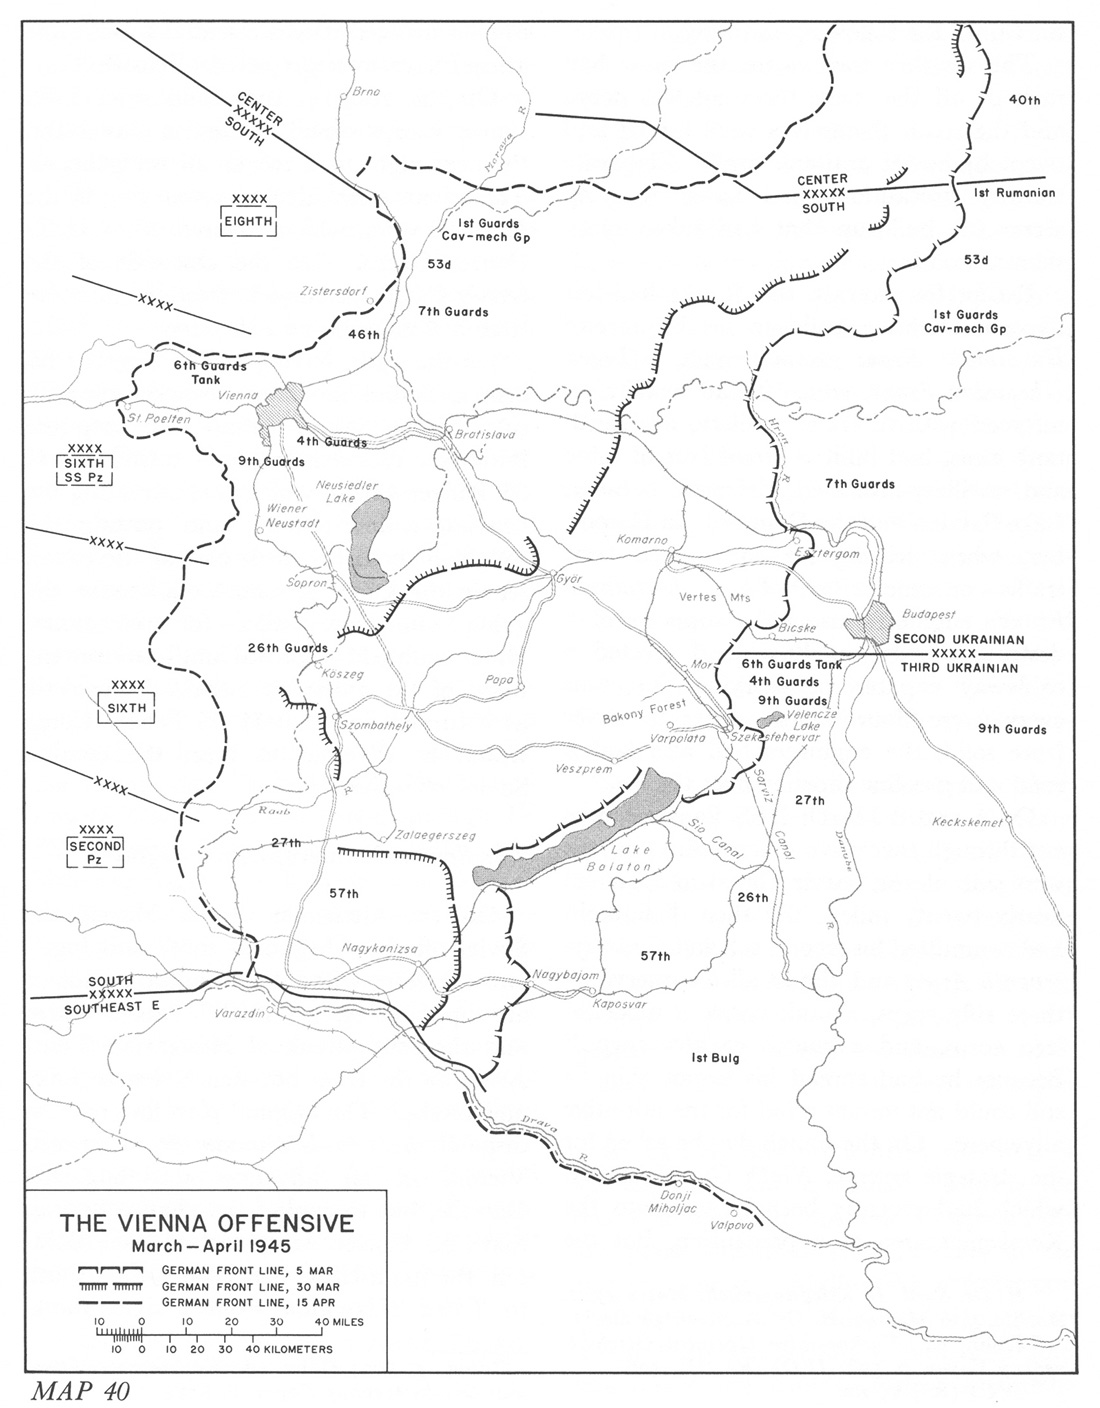 hyperwar stalingrad to berlin the german defeat in the east P90 Rifle the vienna offensive march april 1945